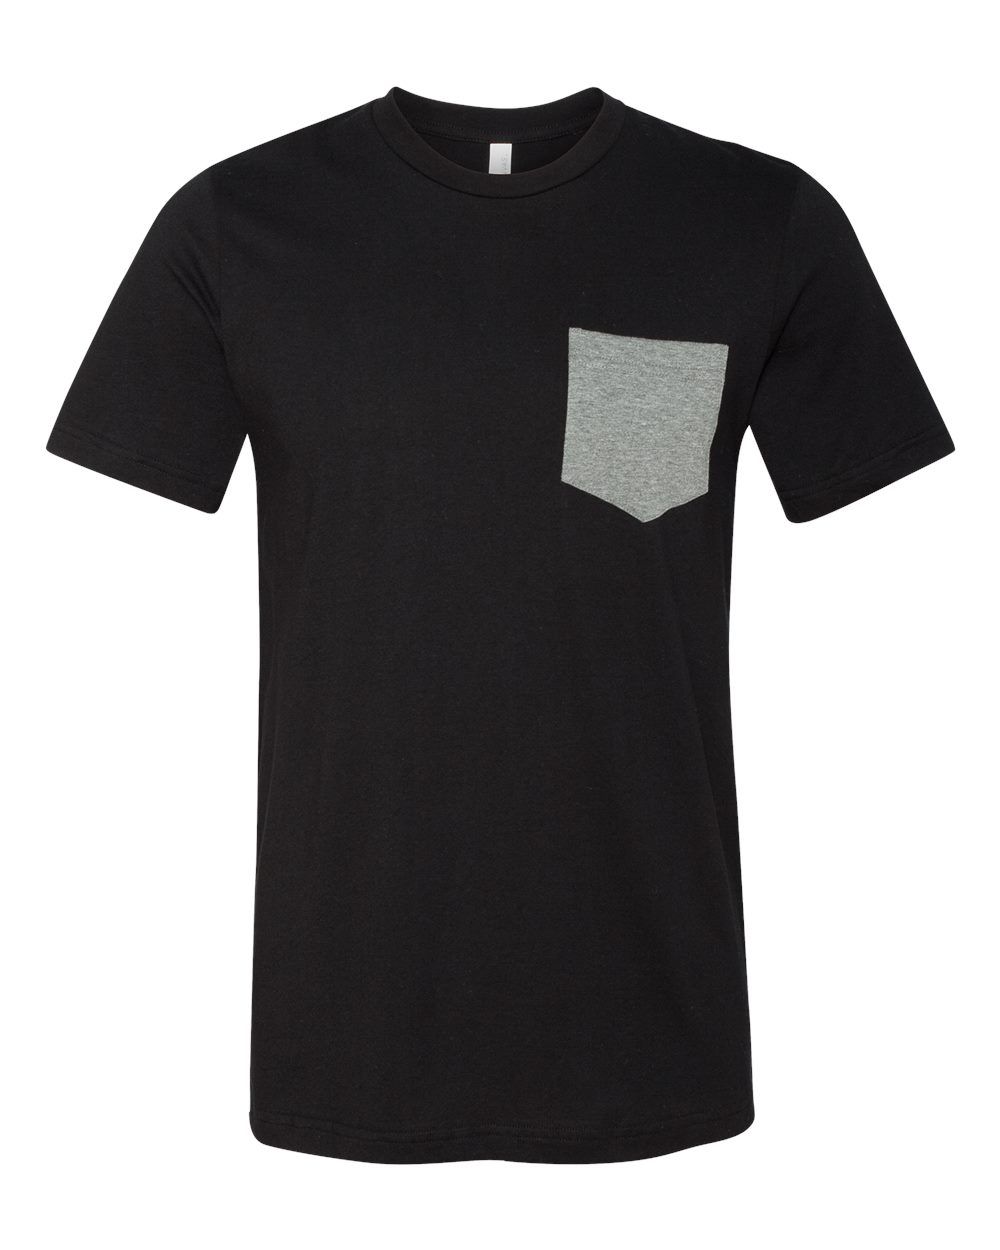 Design your own t shirt front pocket